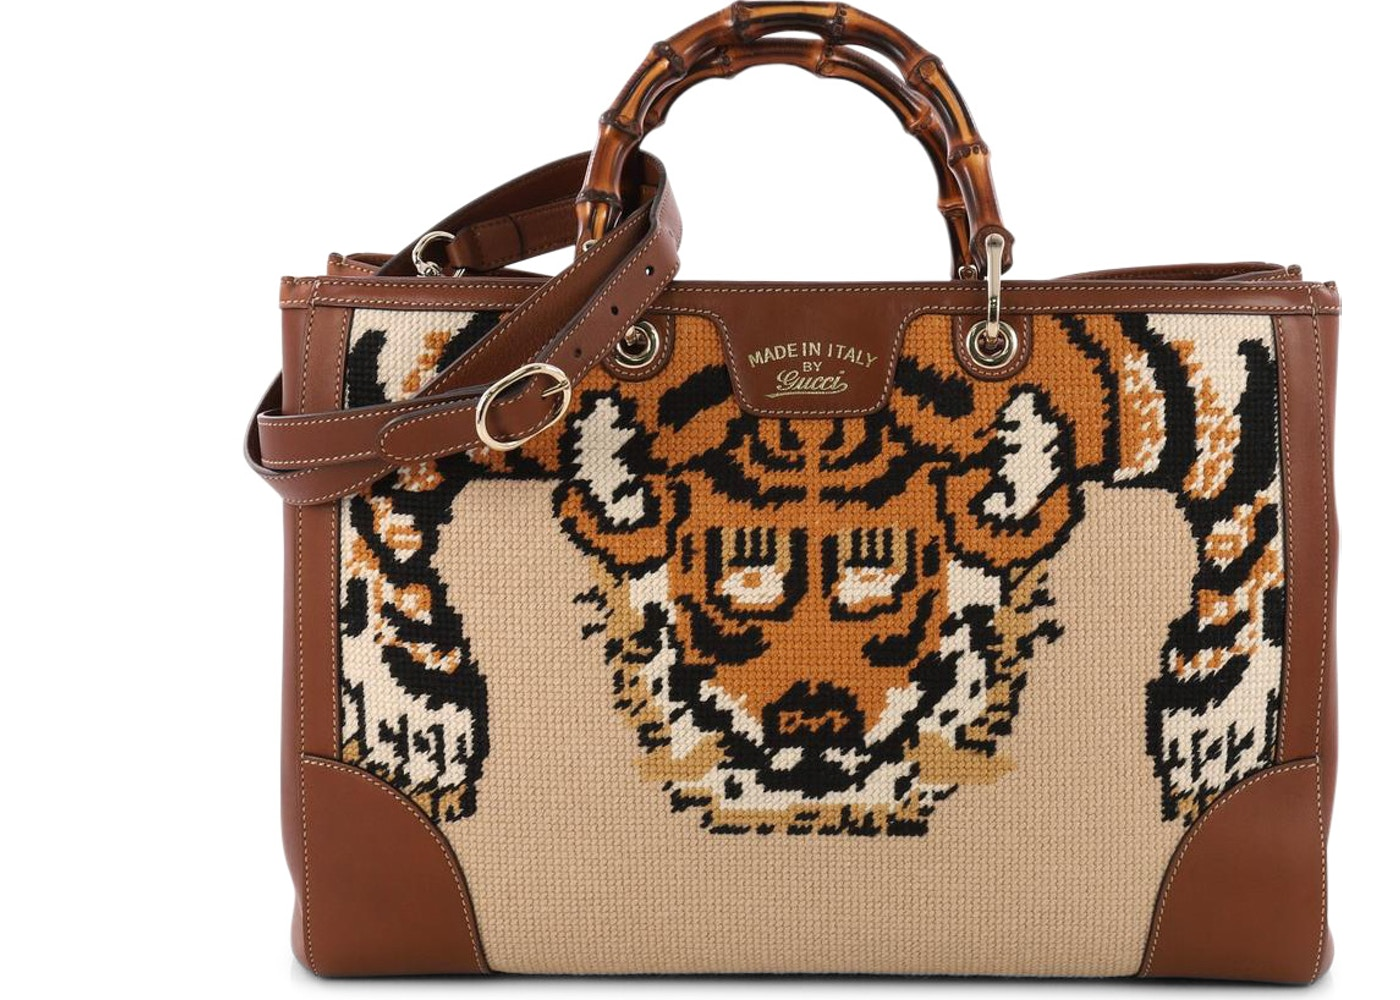 d1b8bb4b086ebc Gucci Bamboo Shopper Tote Embroidered Lion Large Brown/Orange. Embroidered  Lion Large Brown/Orange